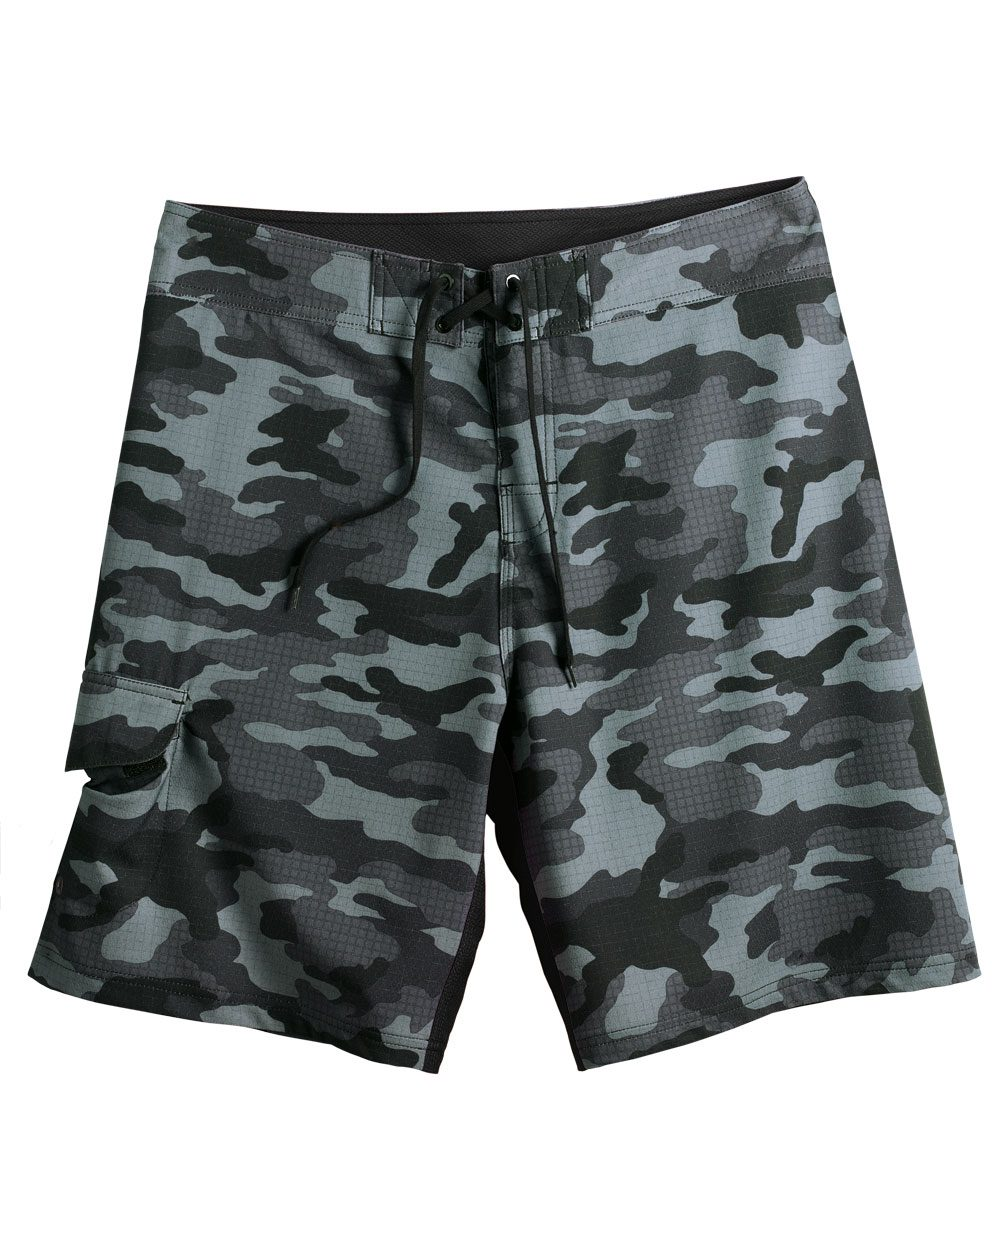 Burnside Camo-Diamond Dobby Board Shorts - B9371